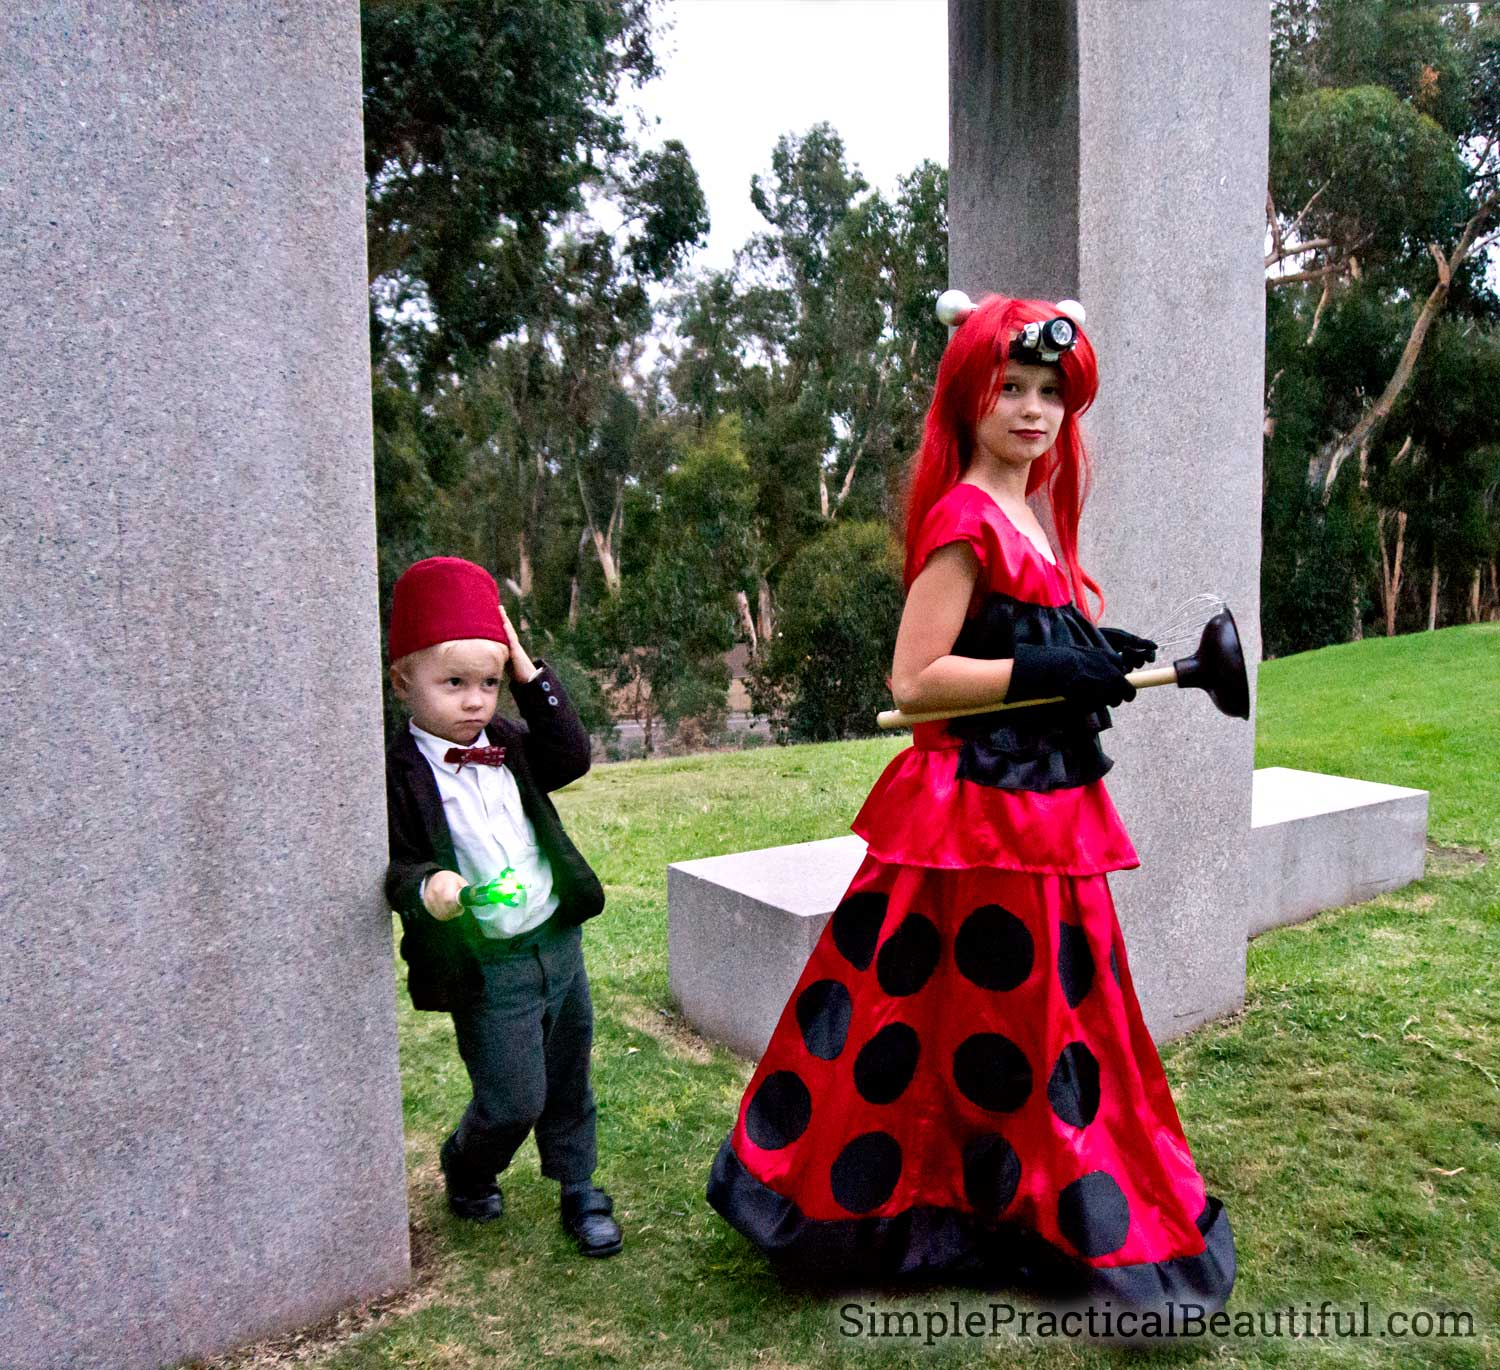 A Dalek costume dress and a mini 11th Doctor